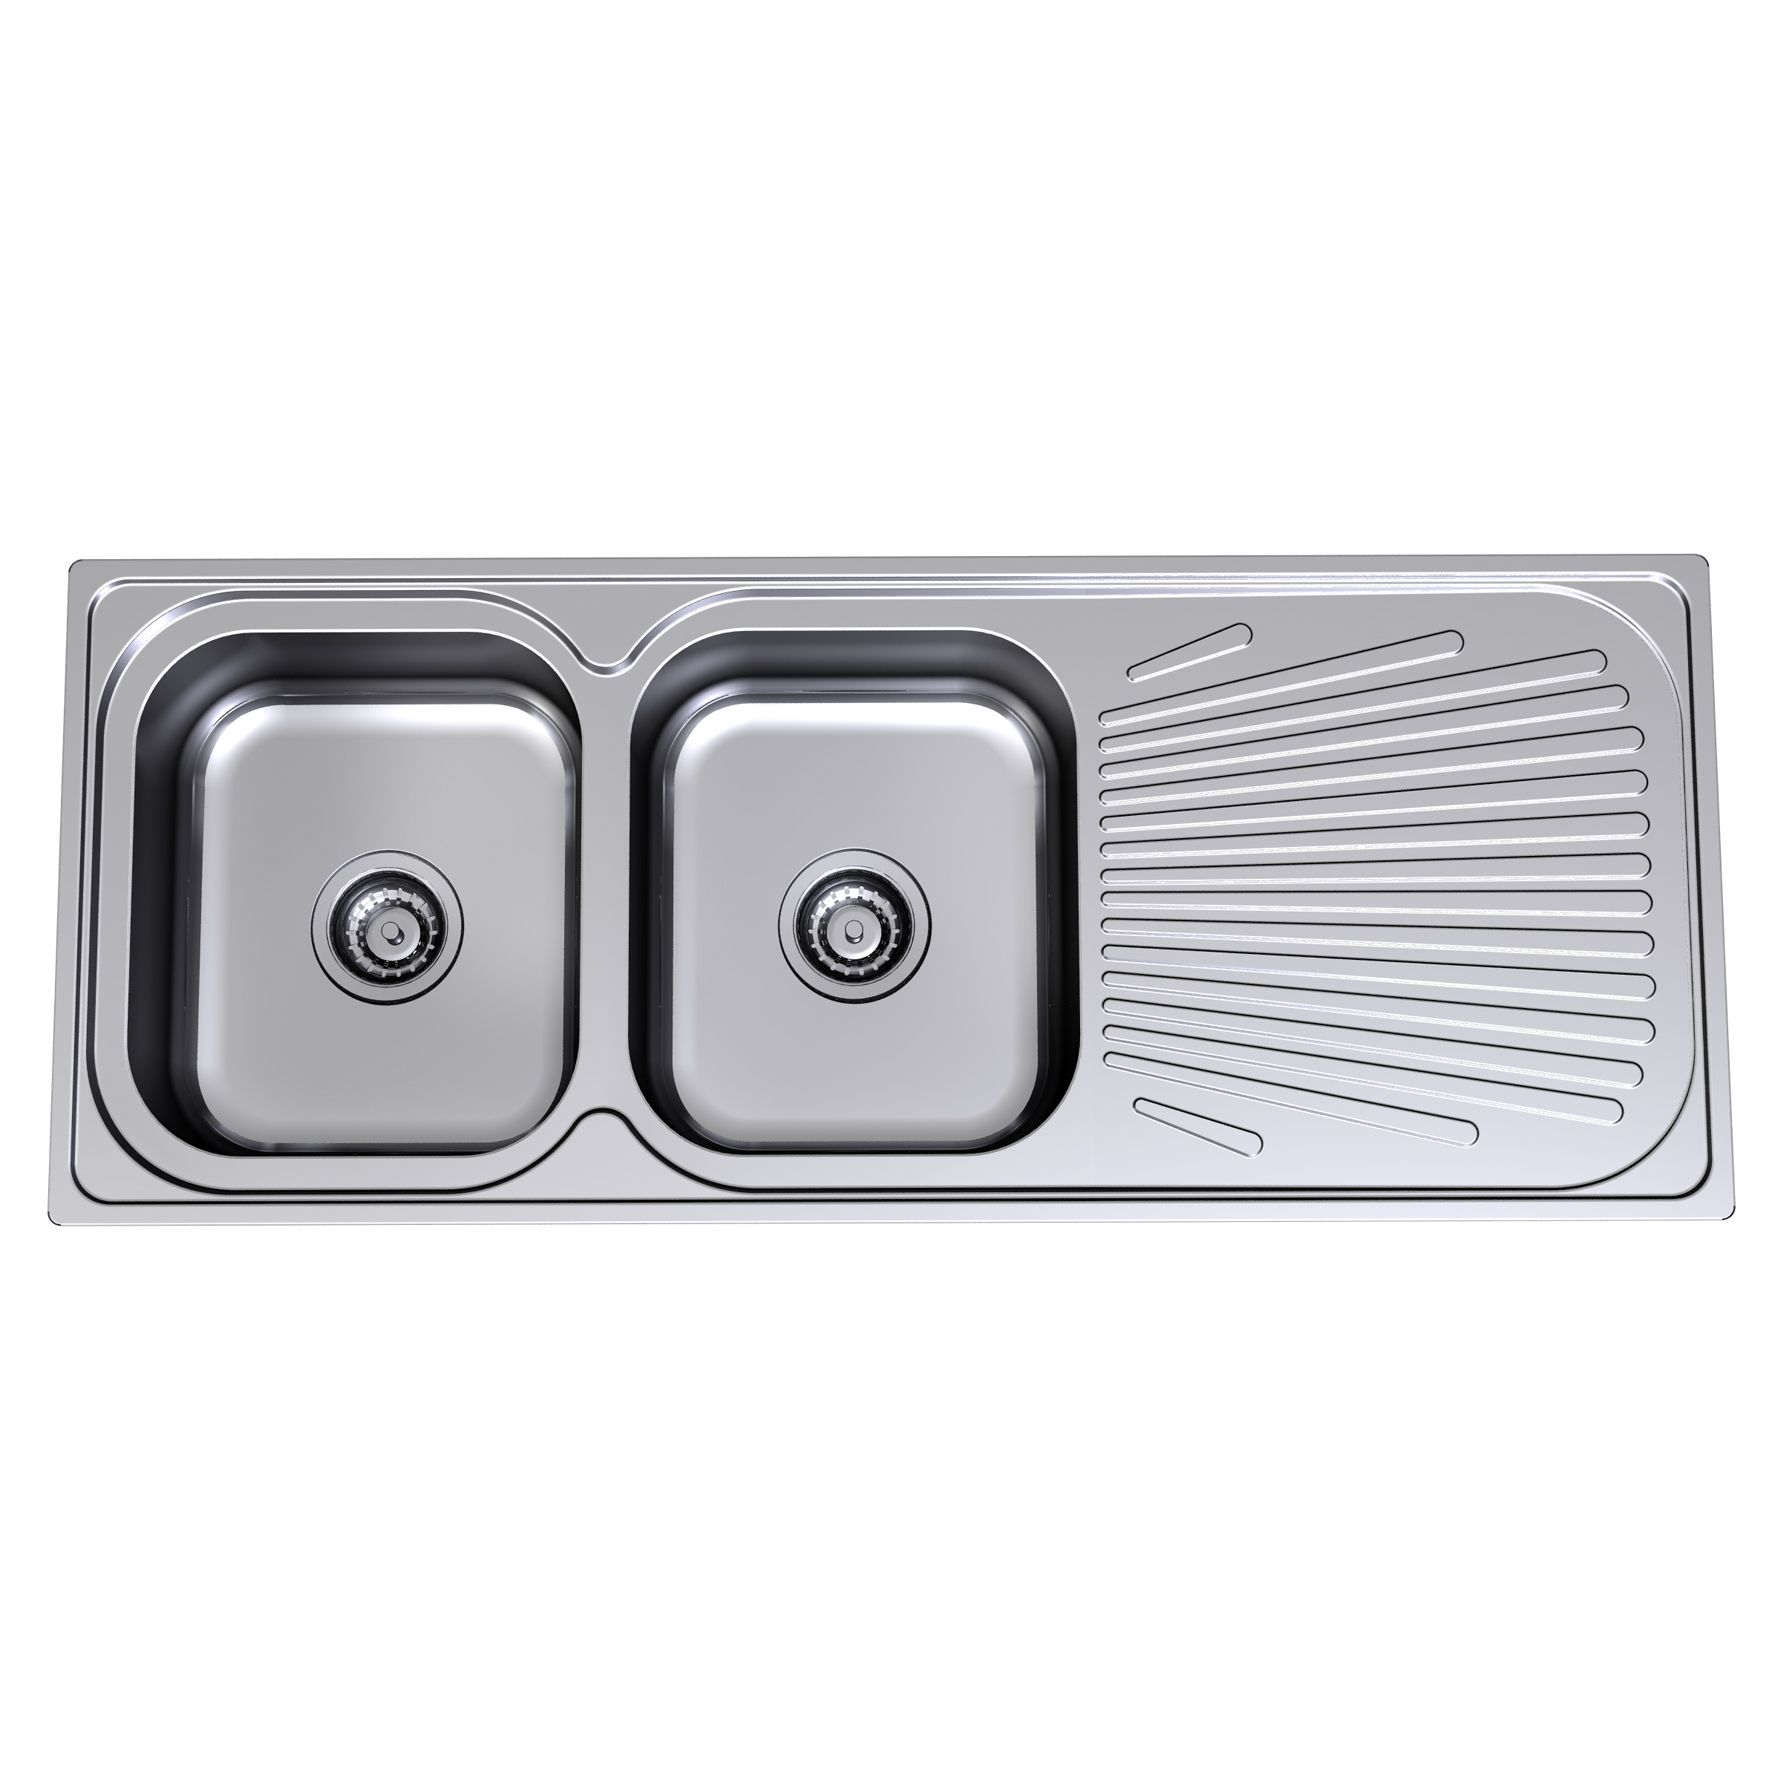 Clark 1180mm Stainless Steel Sink 1129.1r - Bunnings Warehouse ...